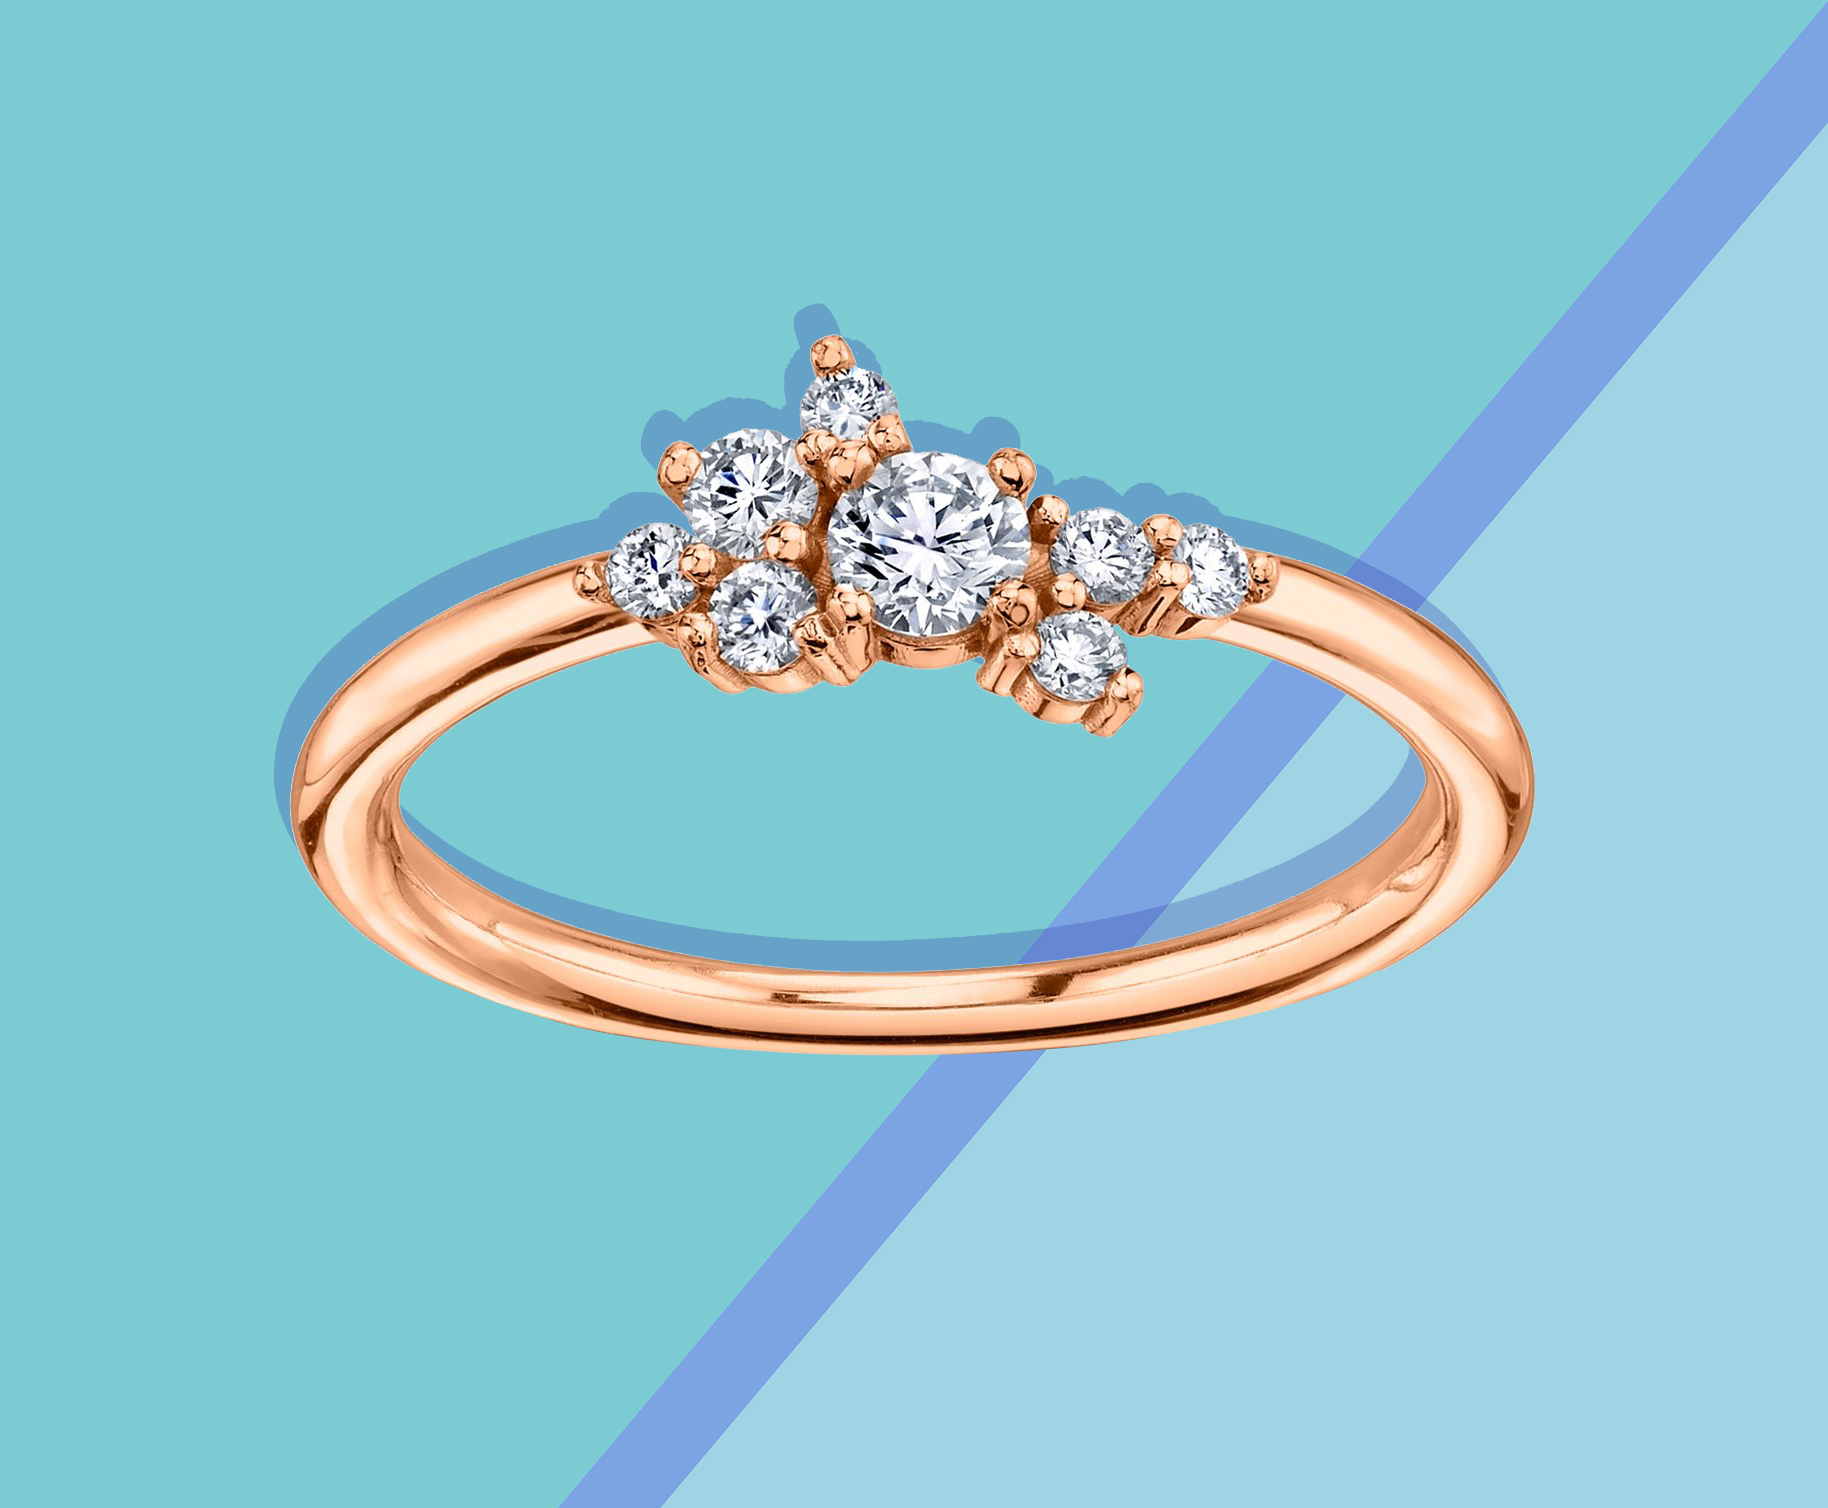 How To Measure Ring Size A Ring Size Chart And 2 More Tips Real Simple